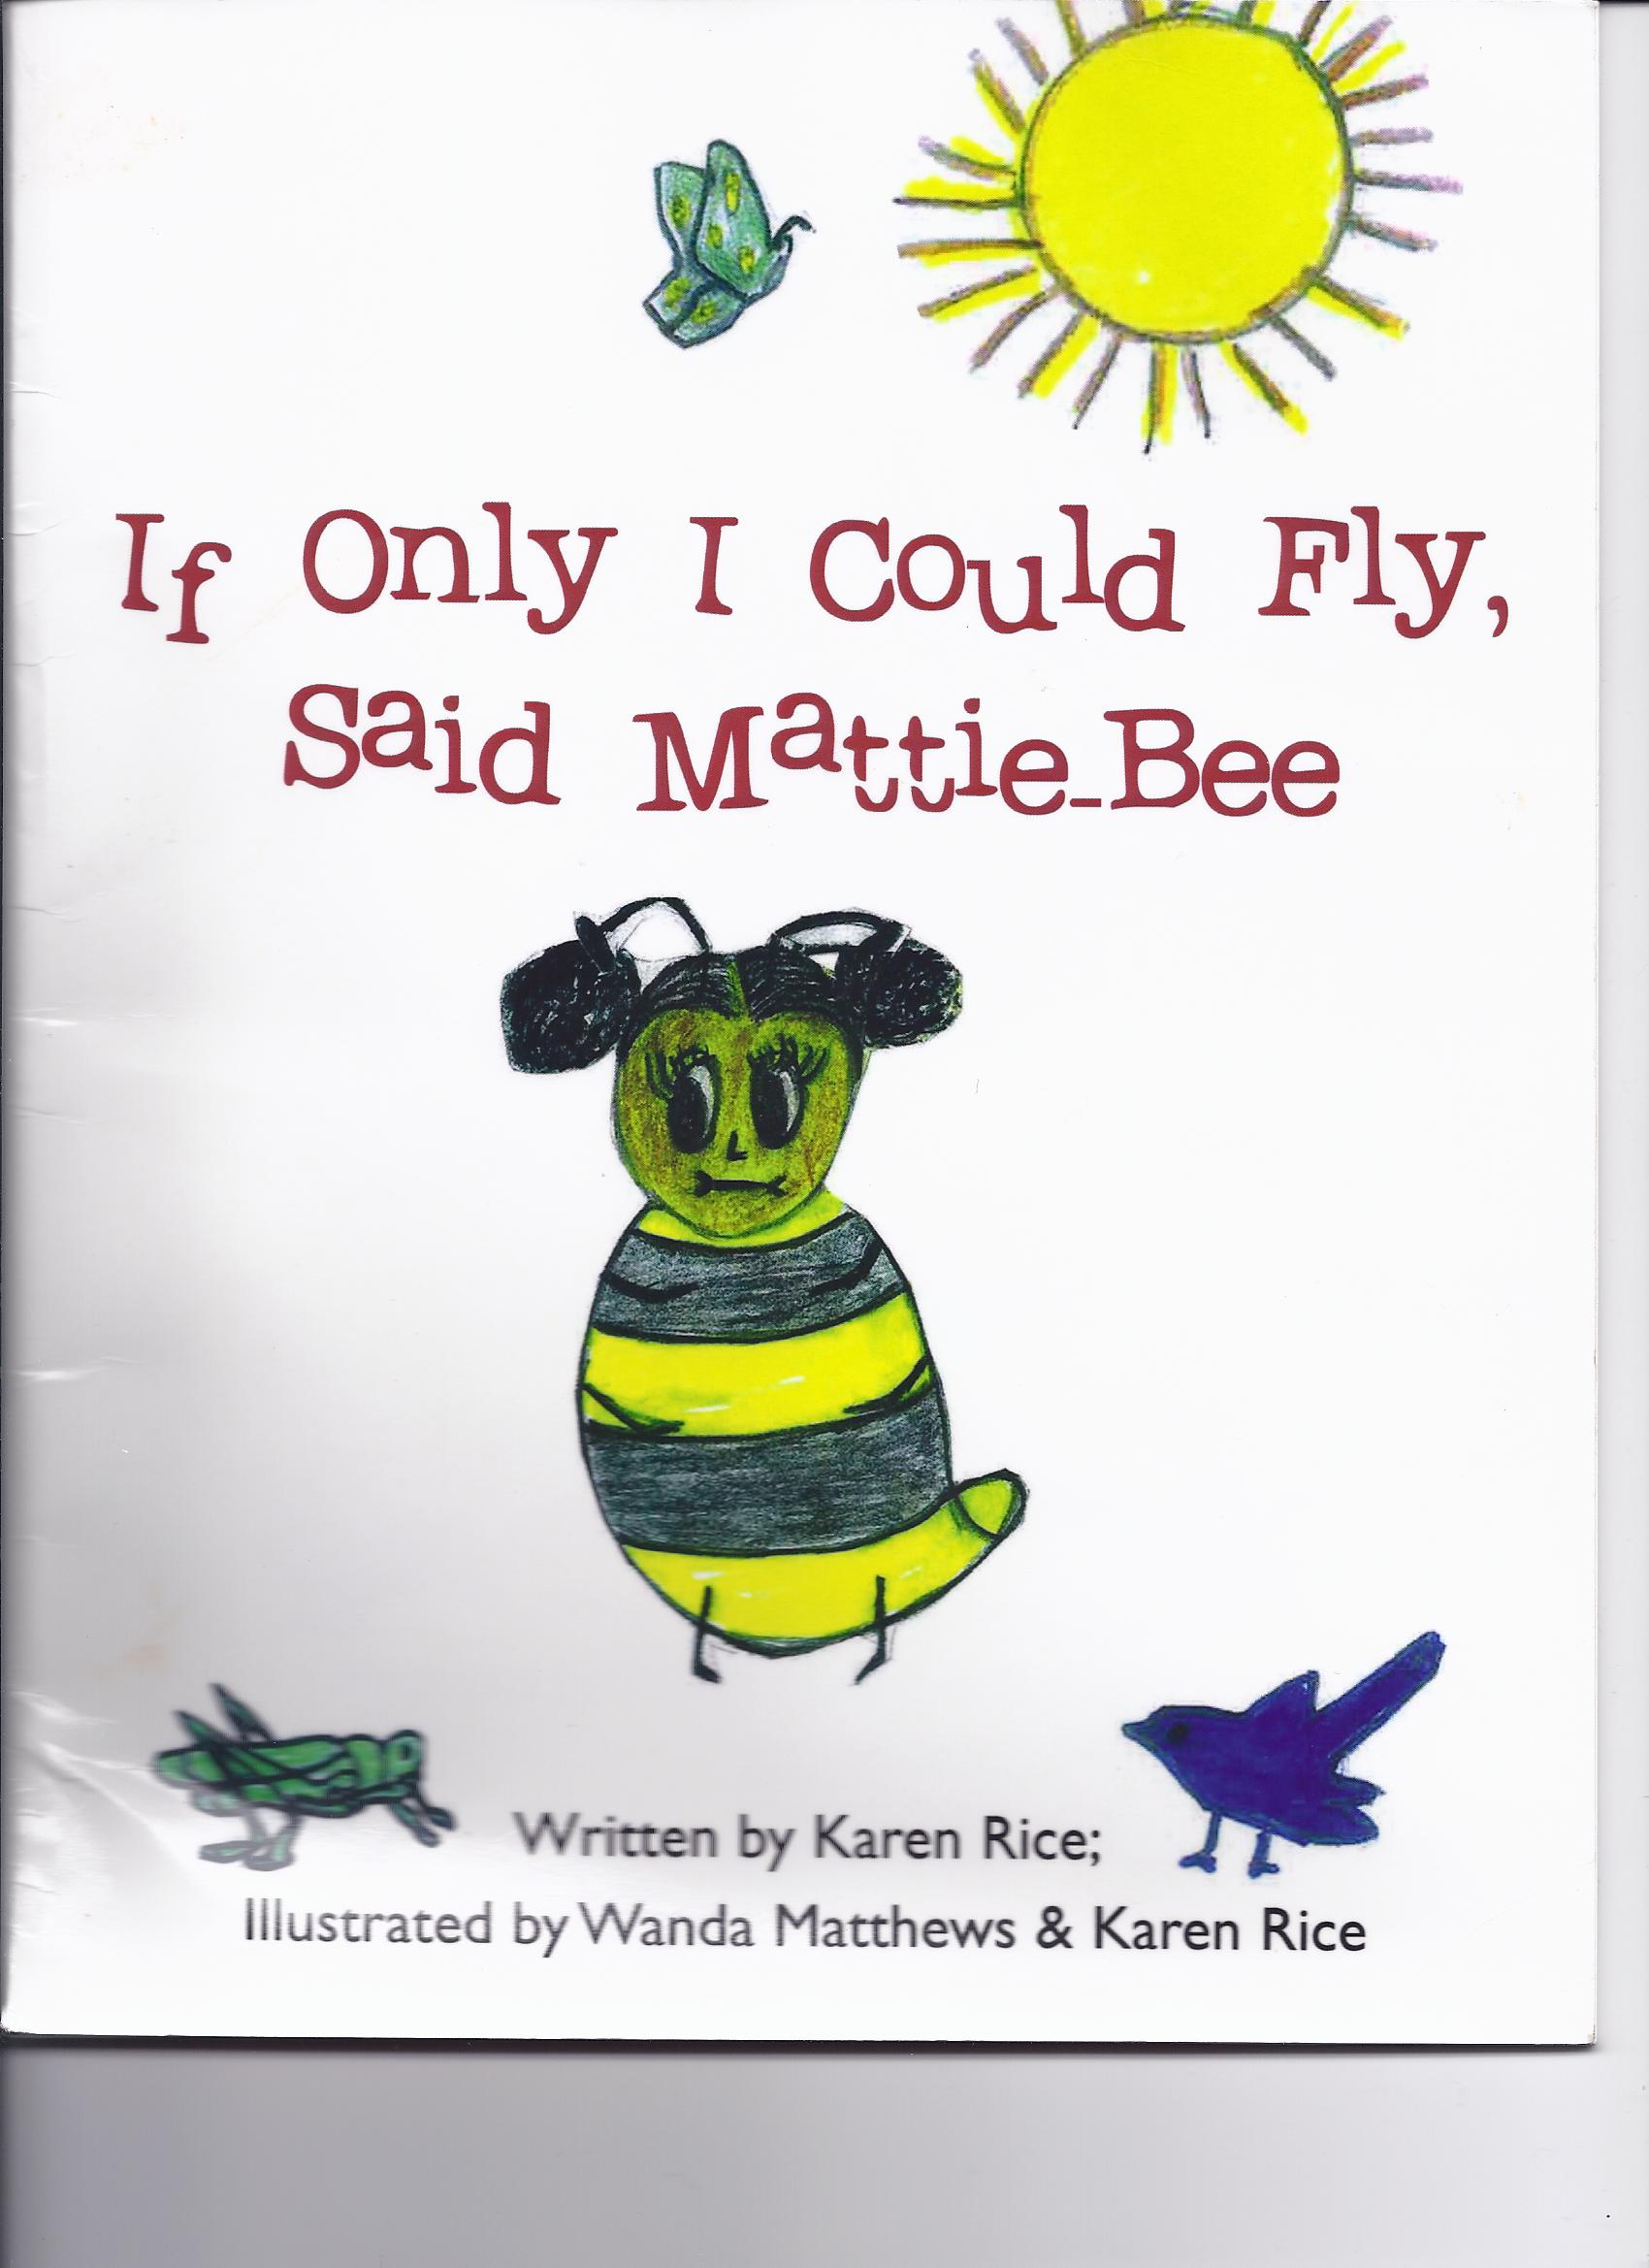 If Only I Could Fly, said Mattie-bee